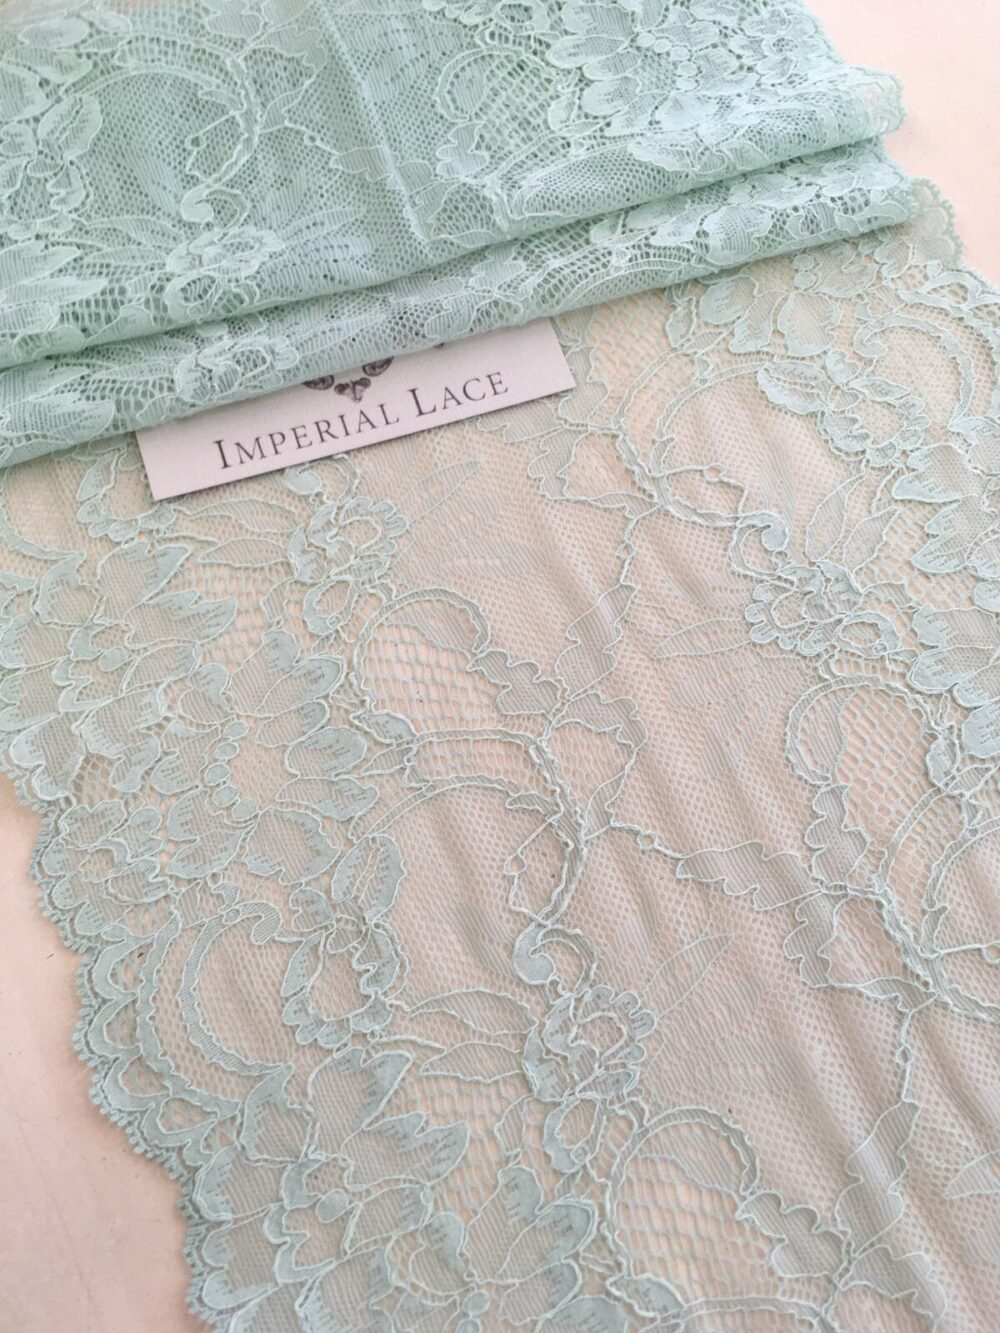 Mint Lace Trim By The Yard, French Elastic Trim, Green Trimming, Bridal Gown, Wedding Lace, Veil Lace Garter Mk00353